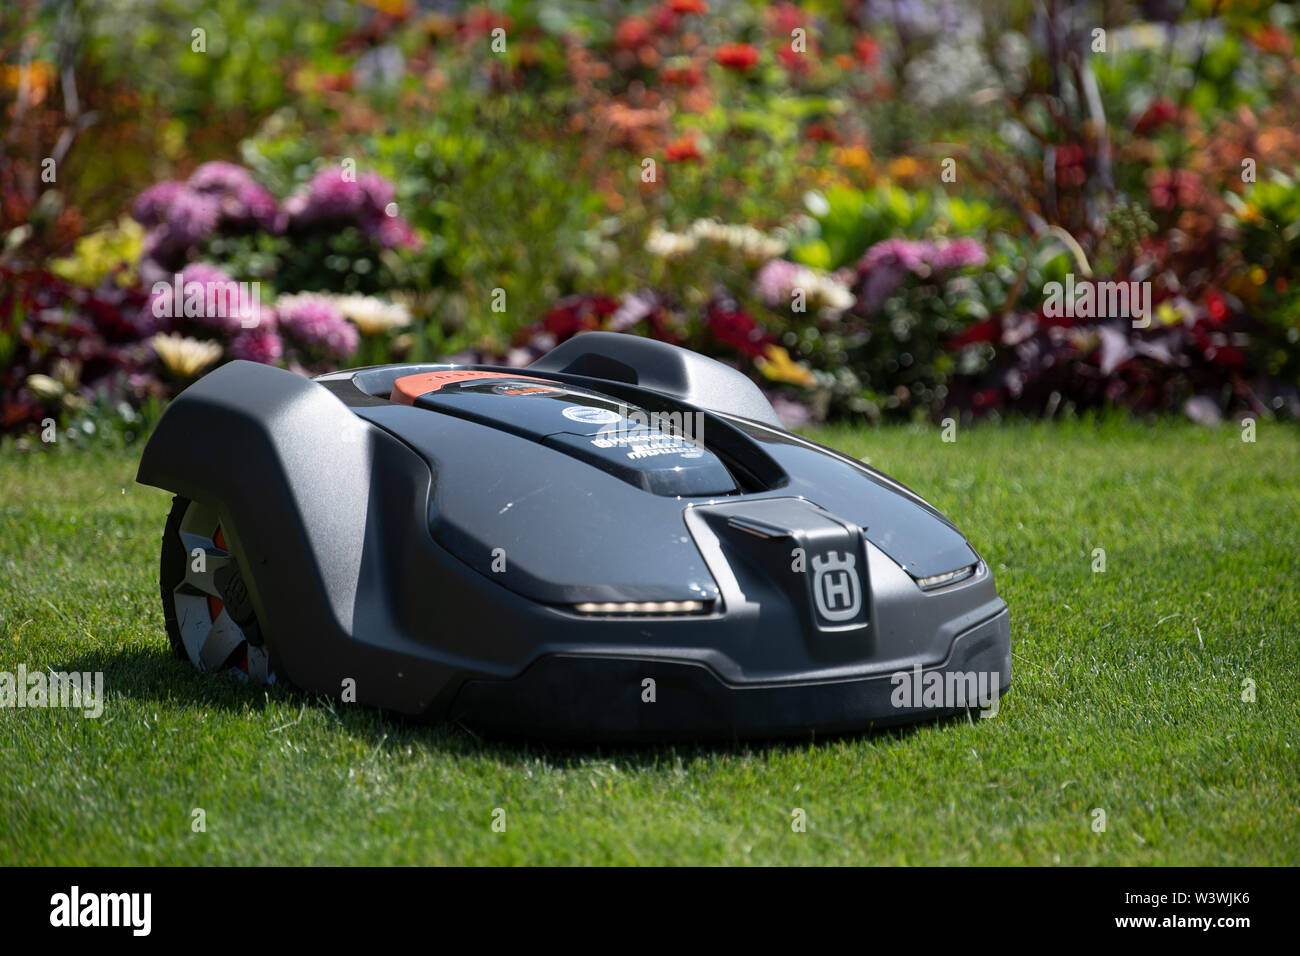 Wittstock, Germany. 17th July, 2019. A Husqvarna mowing robot drives across a meadow at the State Garden Show. Credit: Soeren Stache/dpa/Alamy Live News - Stock Image